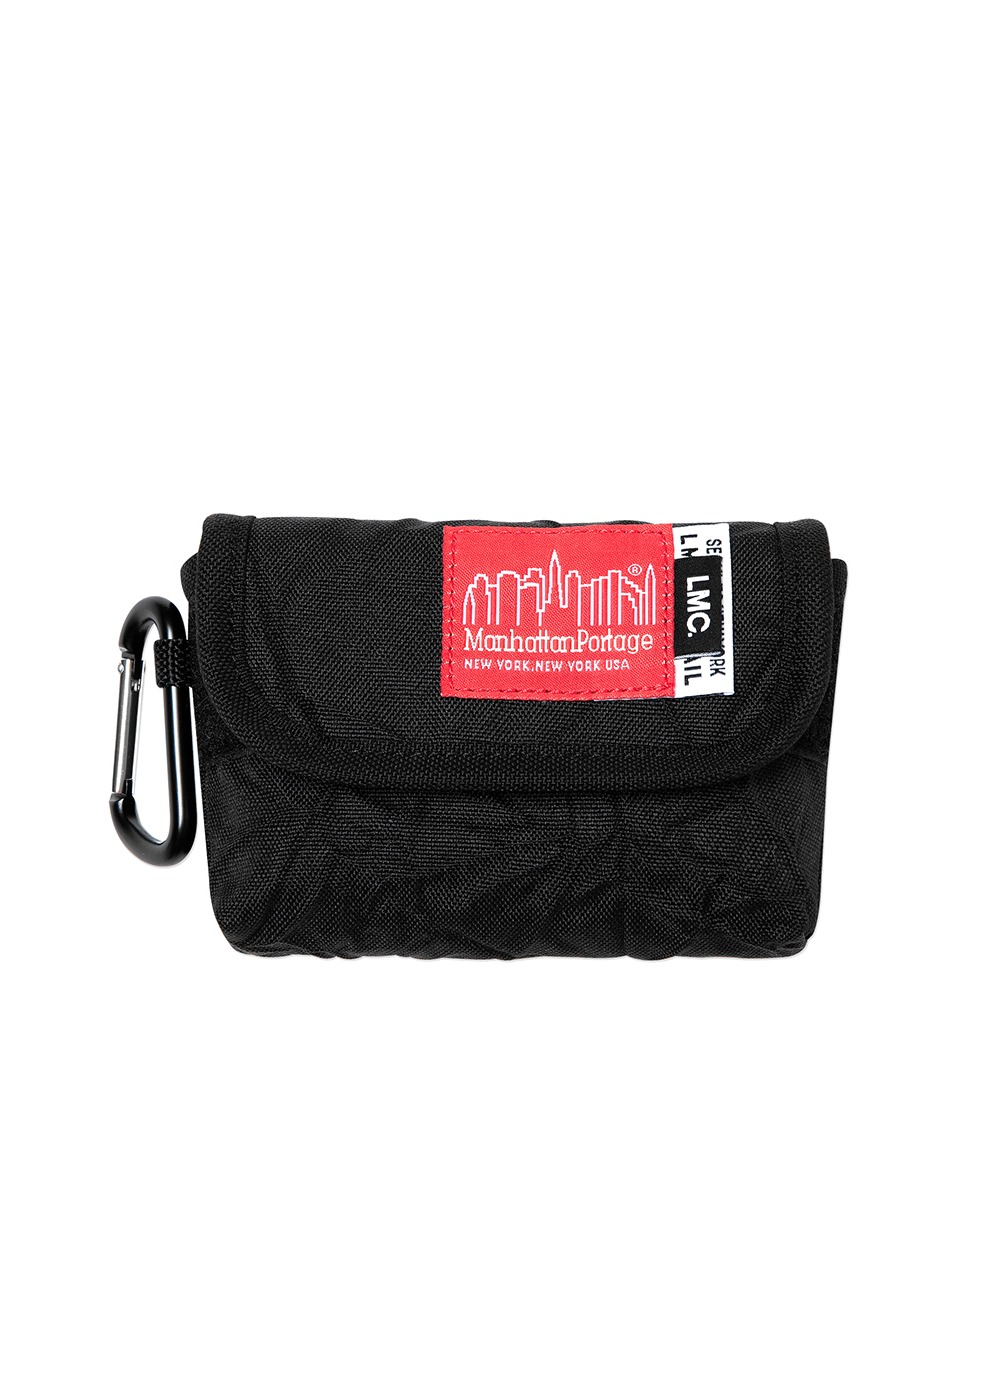 LMC X MANHATTAN PORTAGE CAMERA CASE black